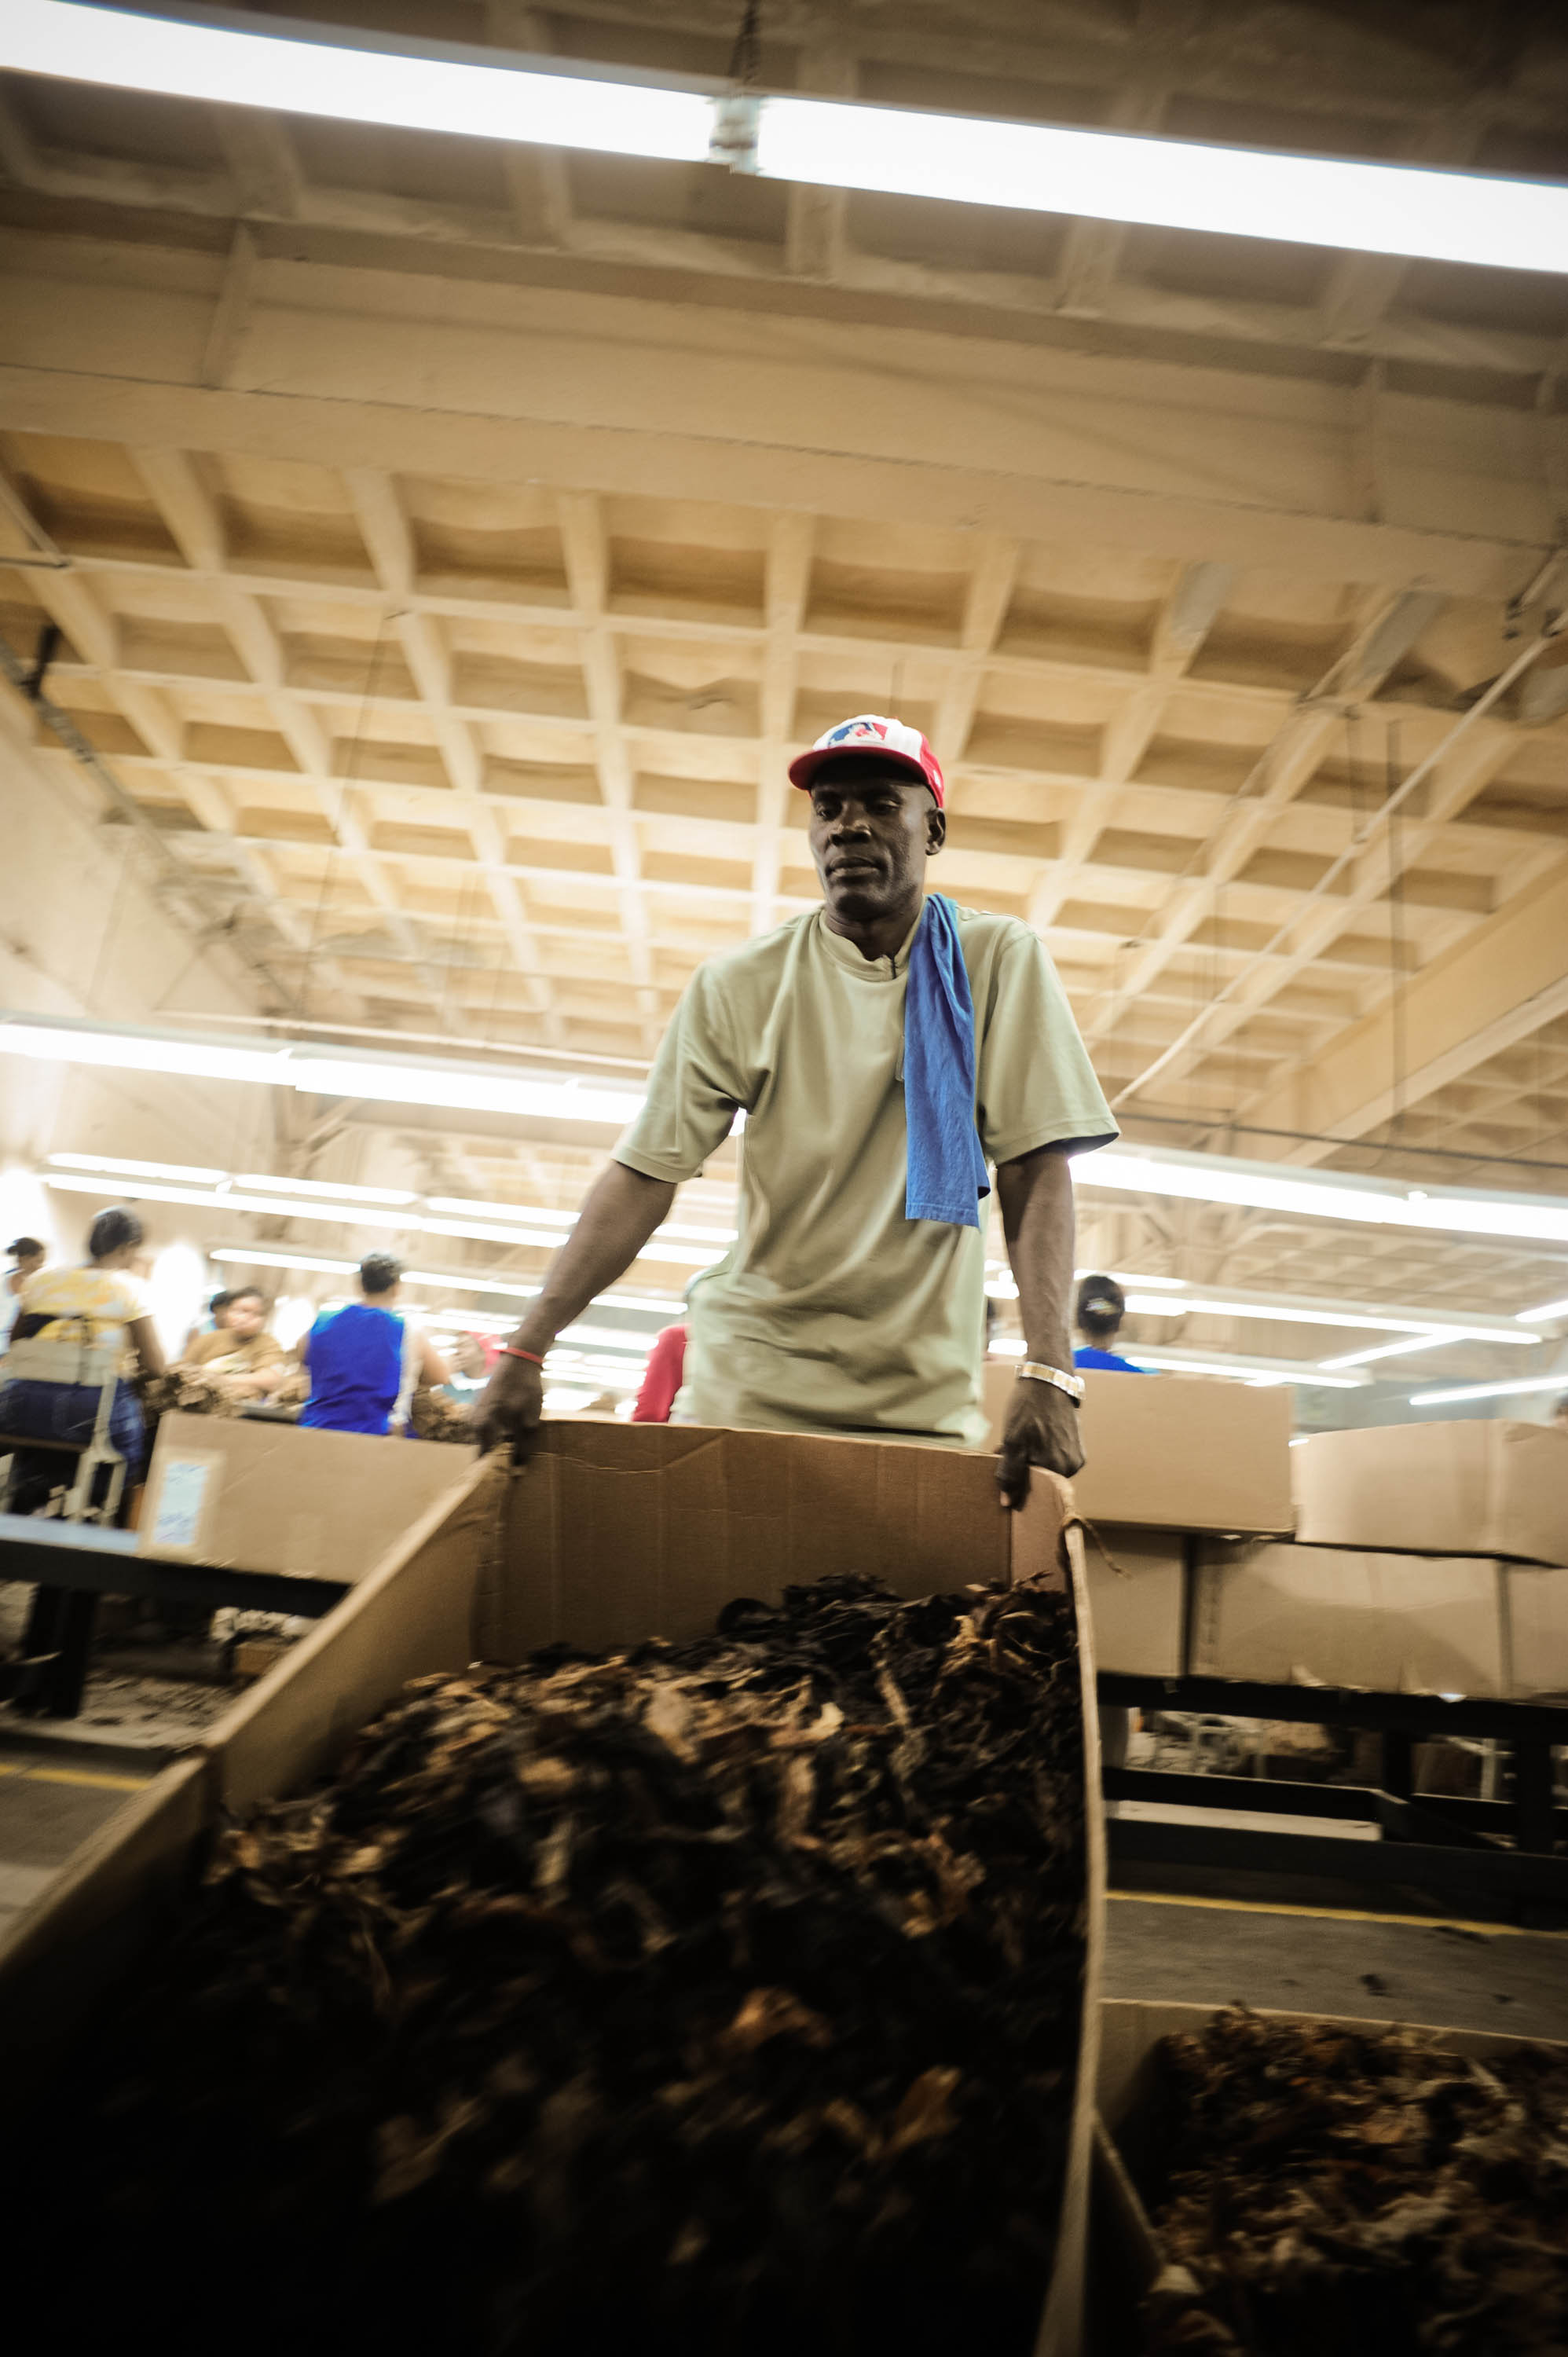 File:Handmade cigar production, process  Manufacture worker